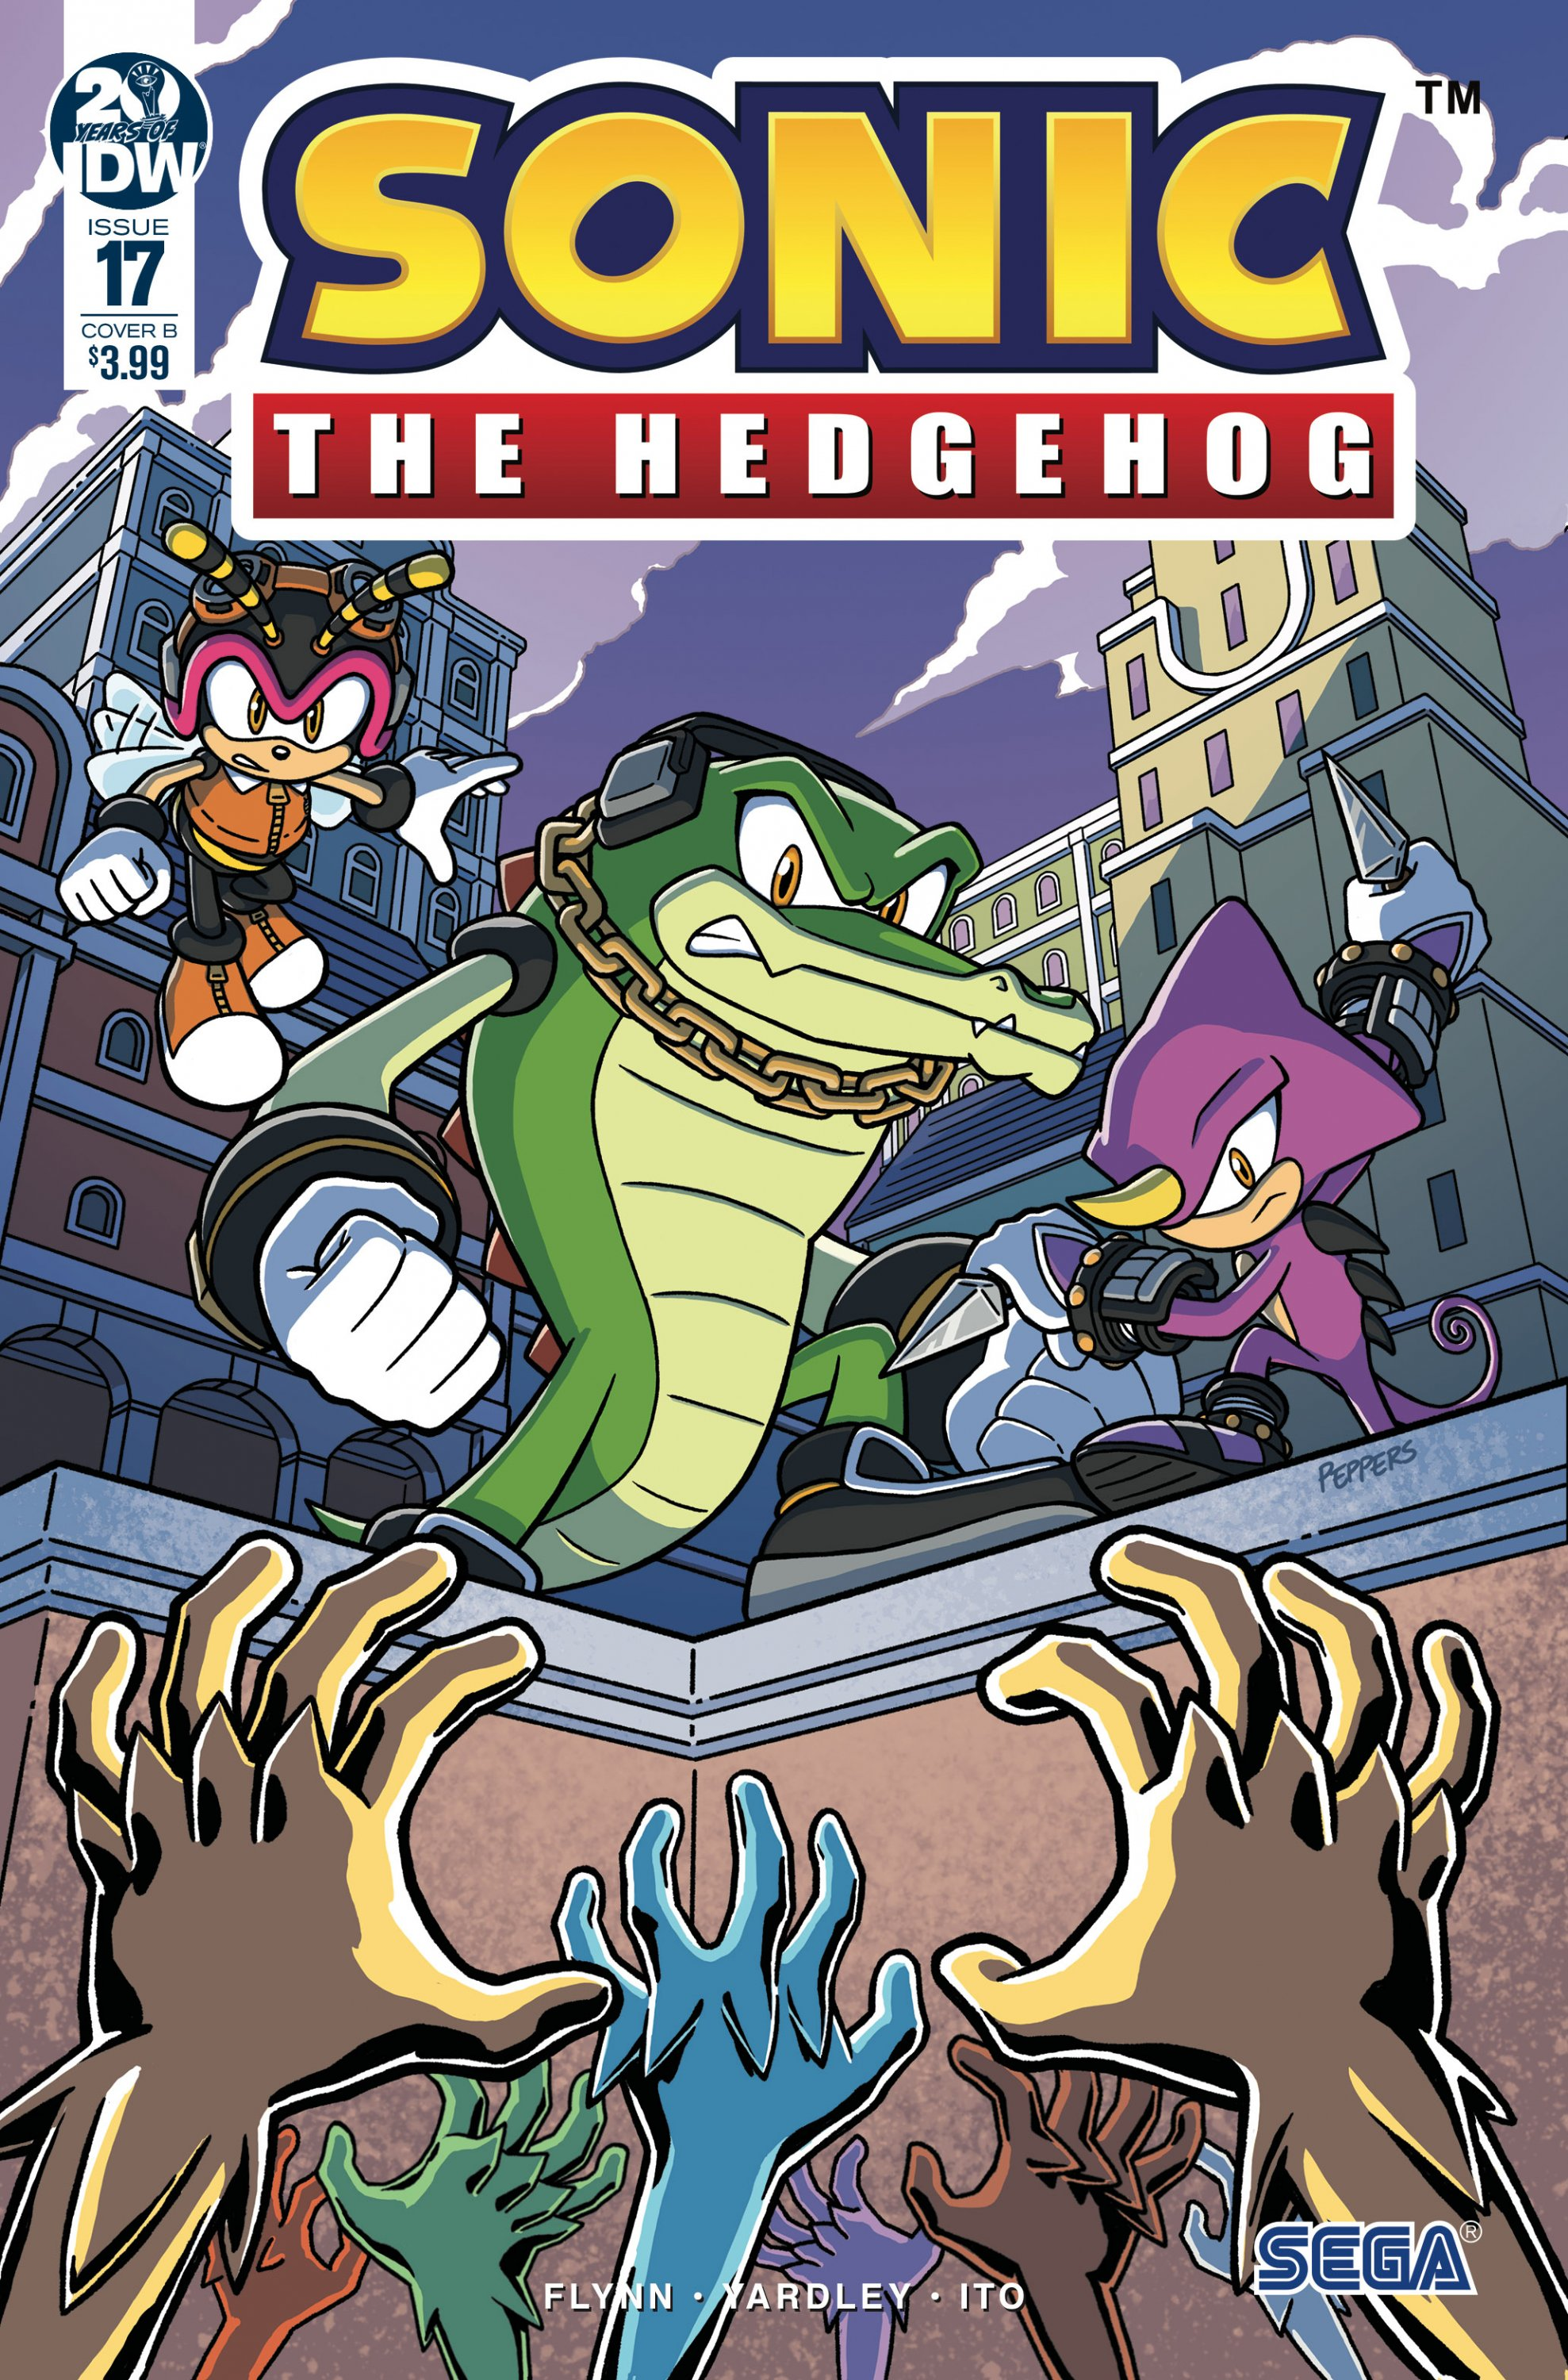 Sonic the Hedgehog 017 (May 2019) (cover b)